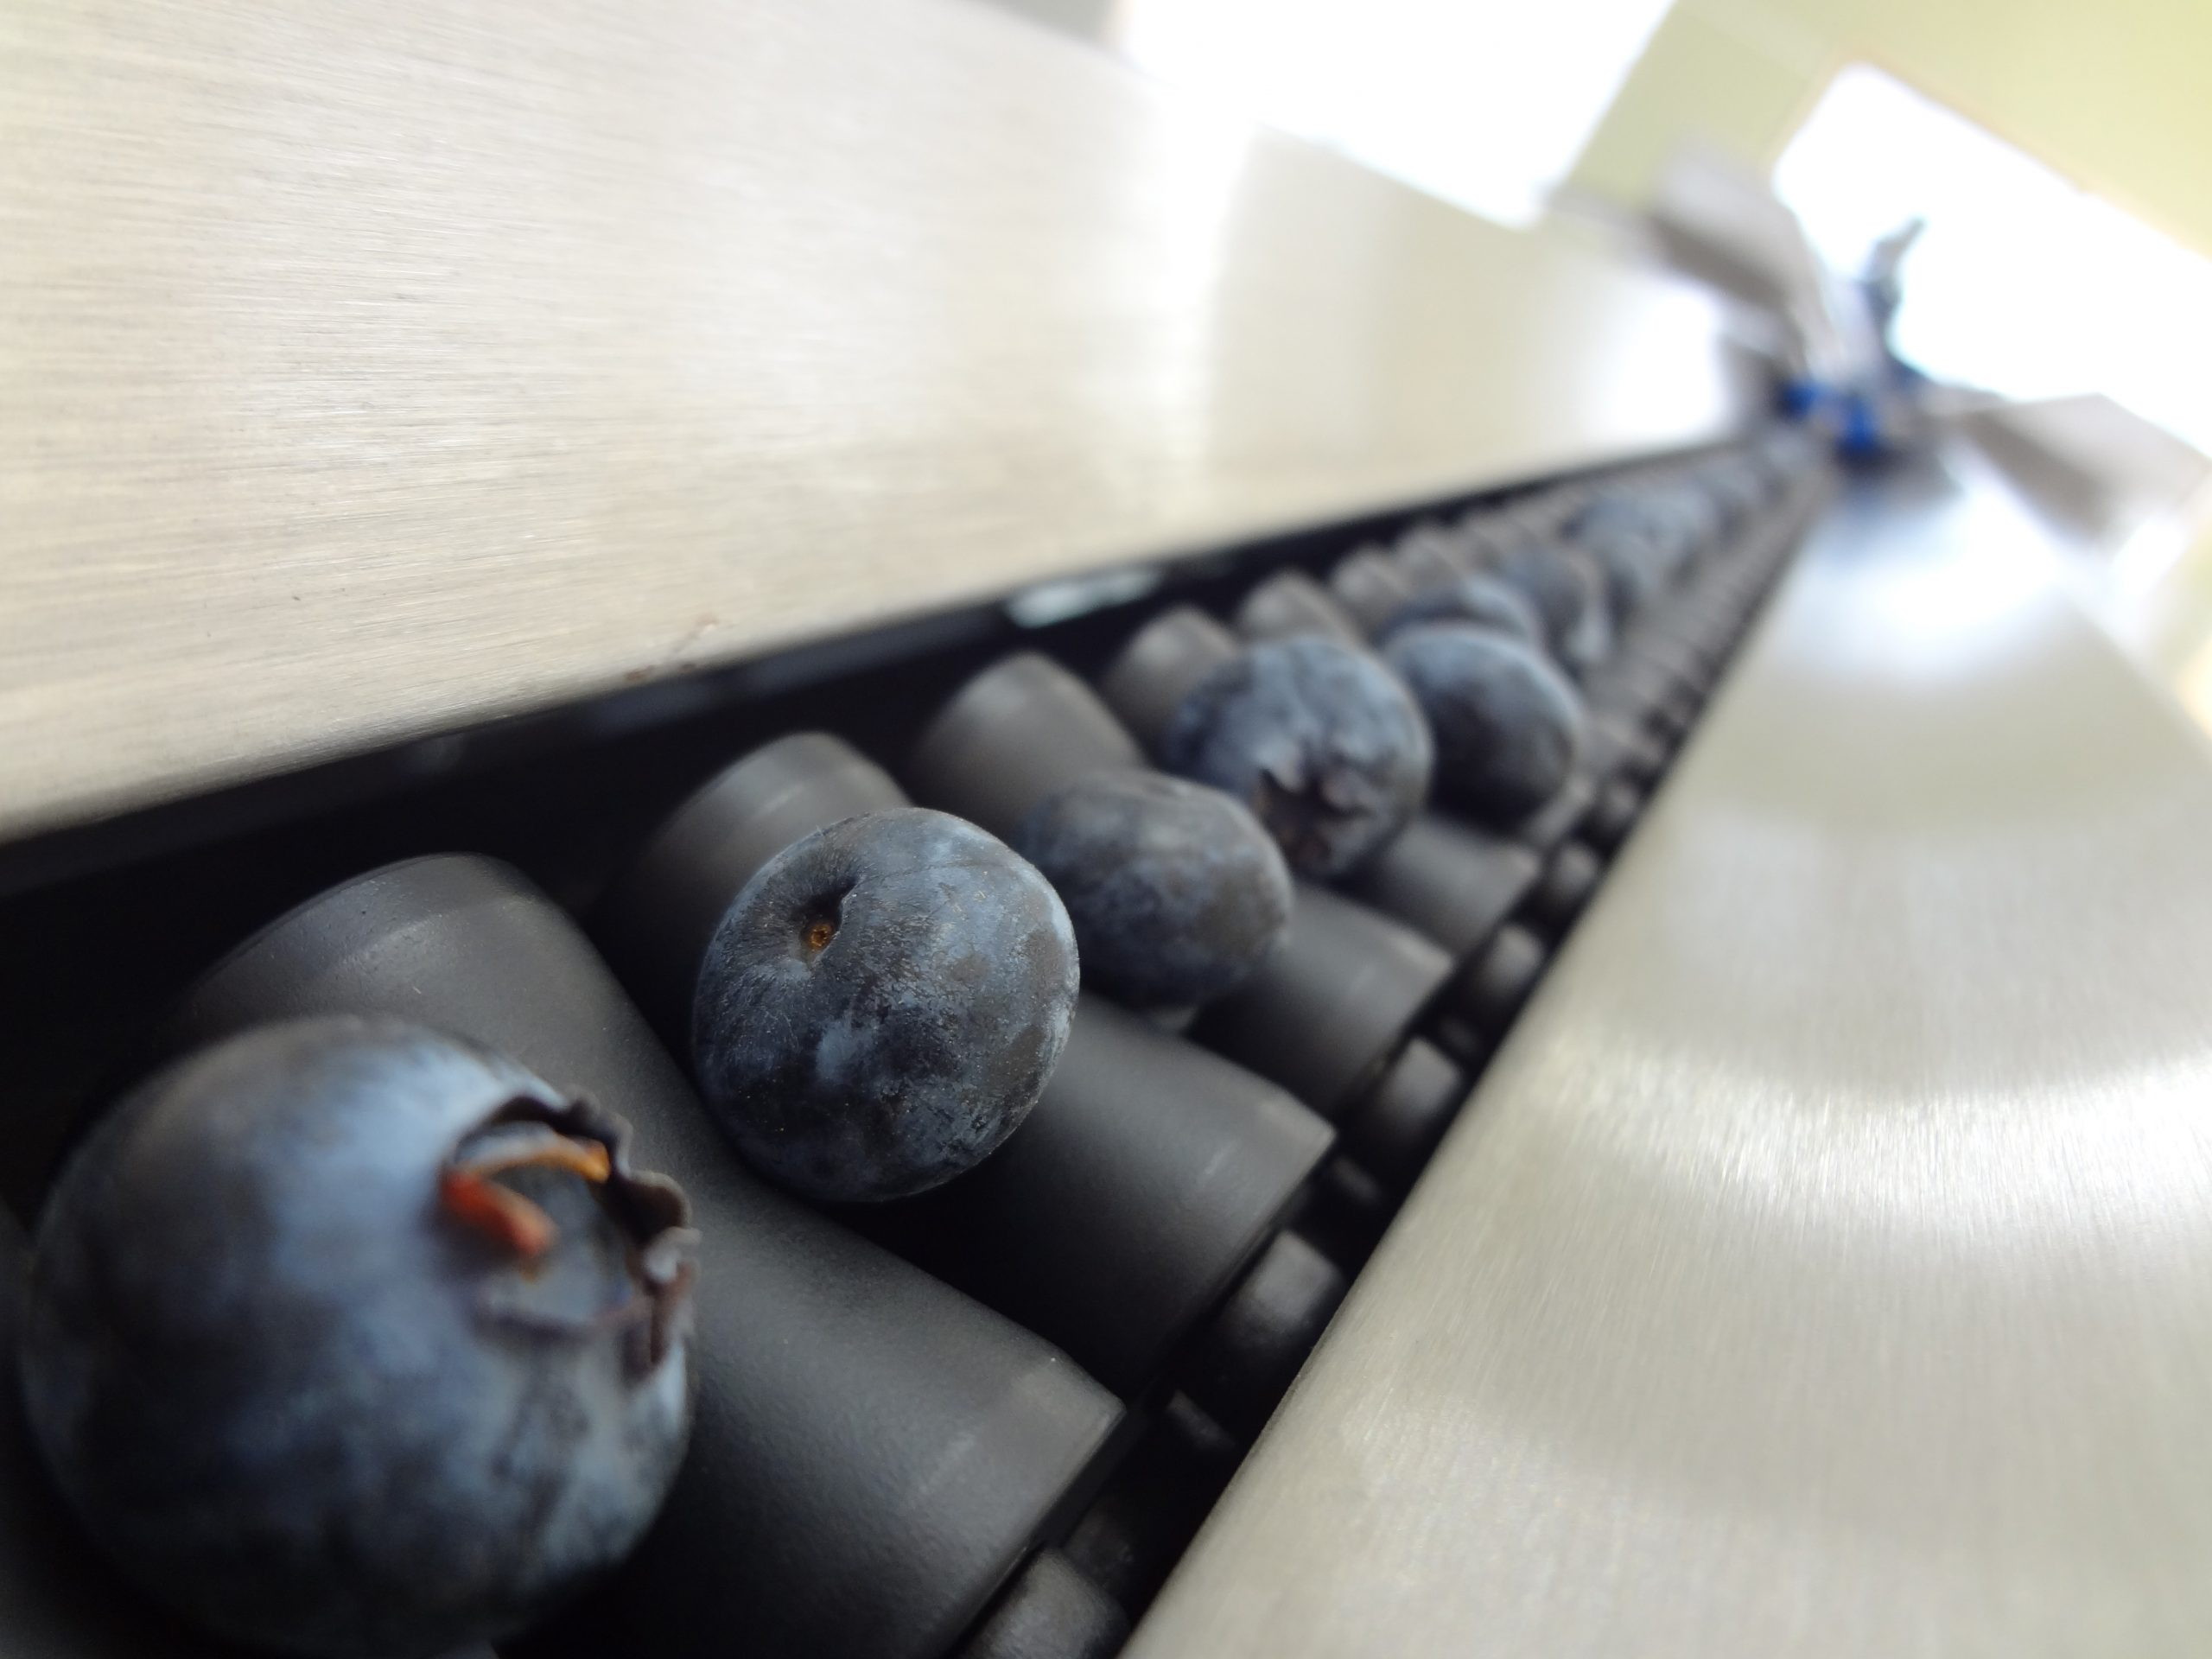 With the innovative patented Blueberry Vision Unitec Technology, fruit and vegetable pack-houses can obtain guarantees for the fruit quality selection and classification stage and always offer fruit with consistent quality over time to their Clients, ruling out the possibility of claims over fruit that fails to meet the agreed quality standards.